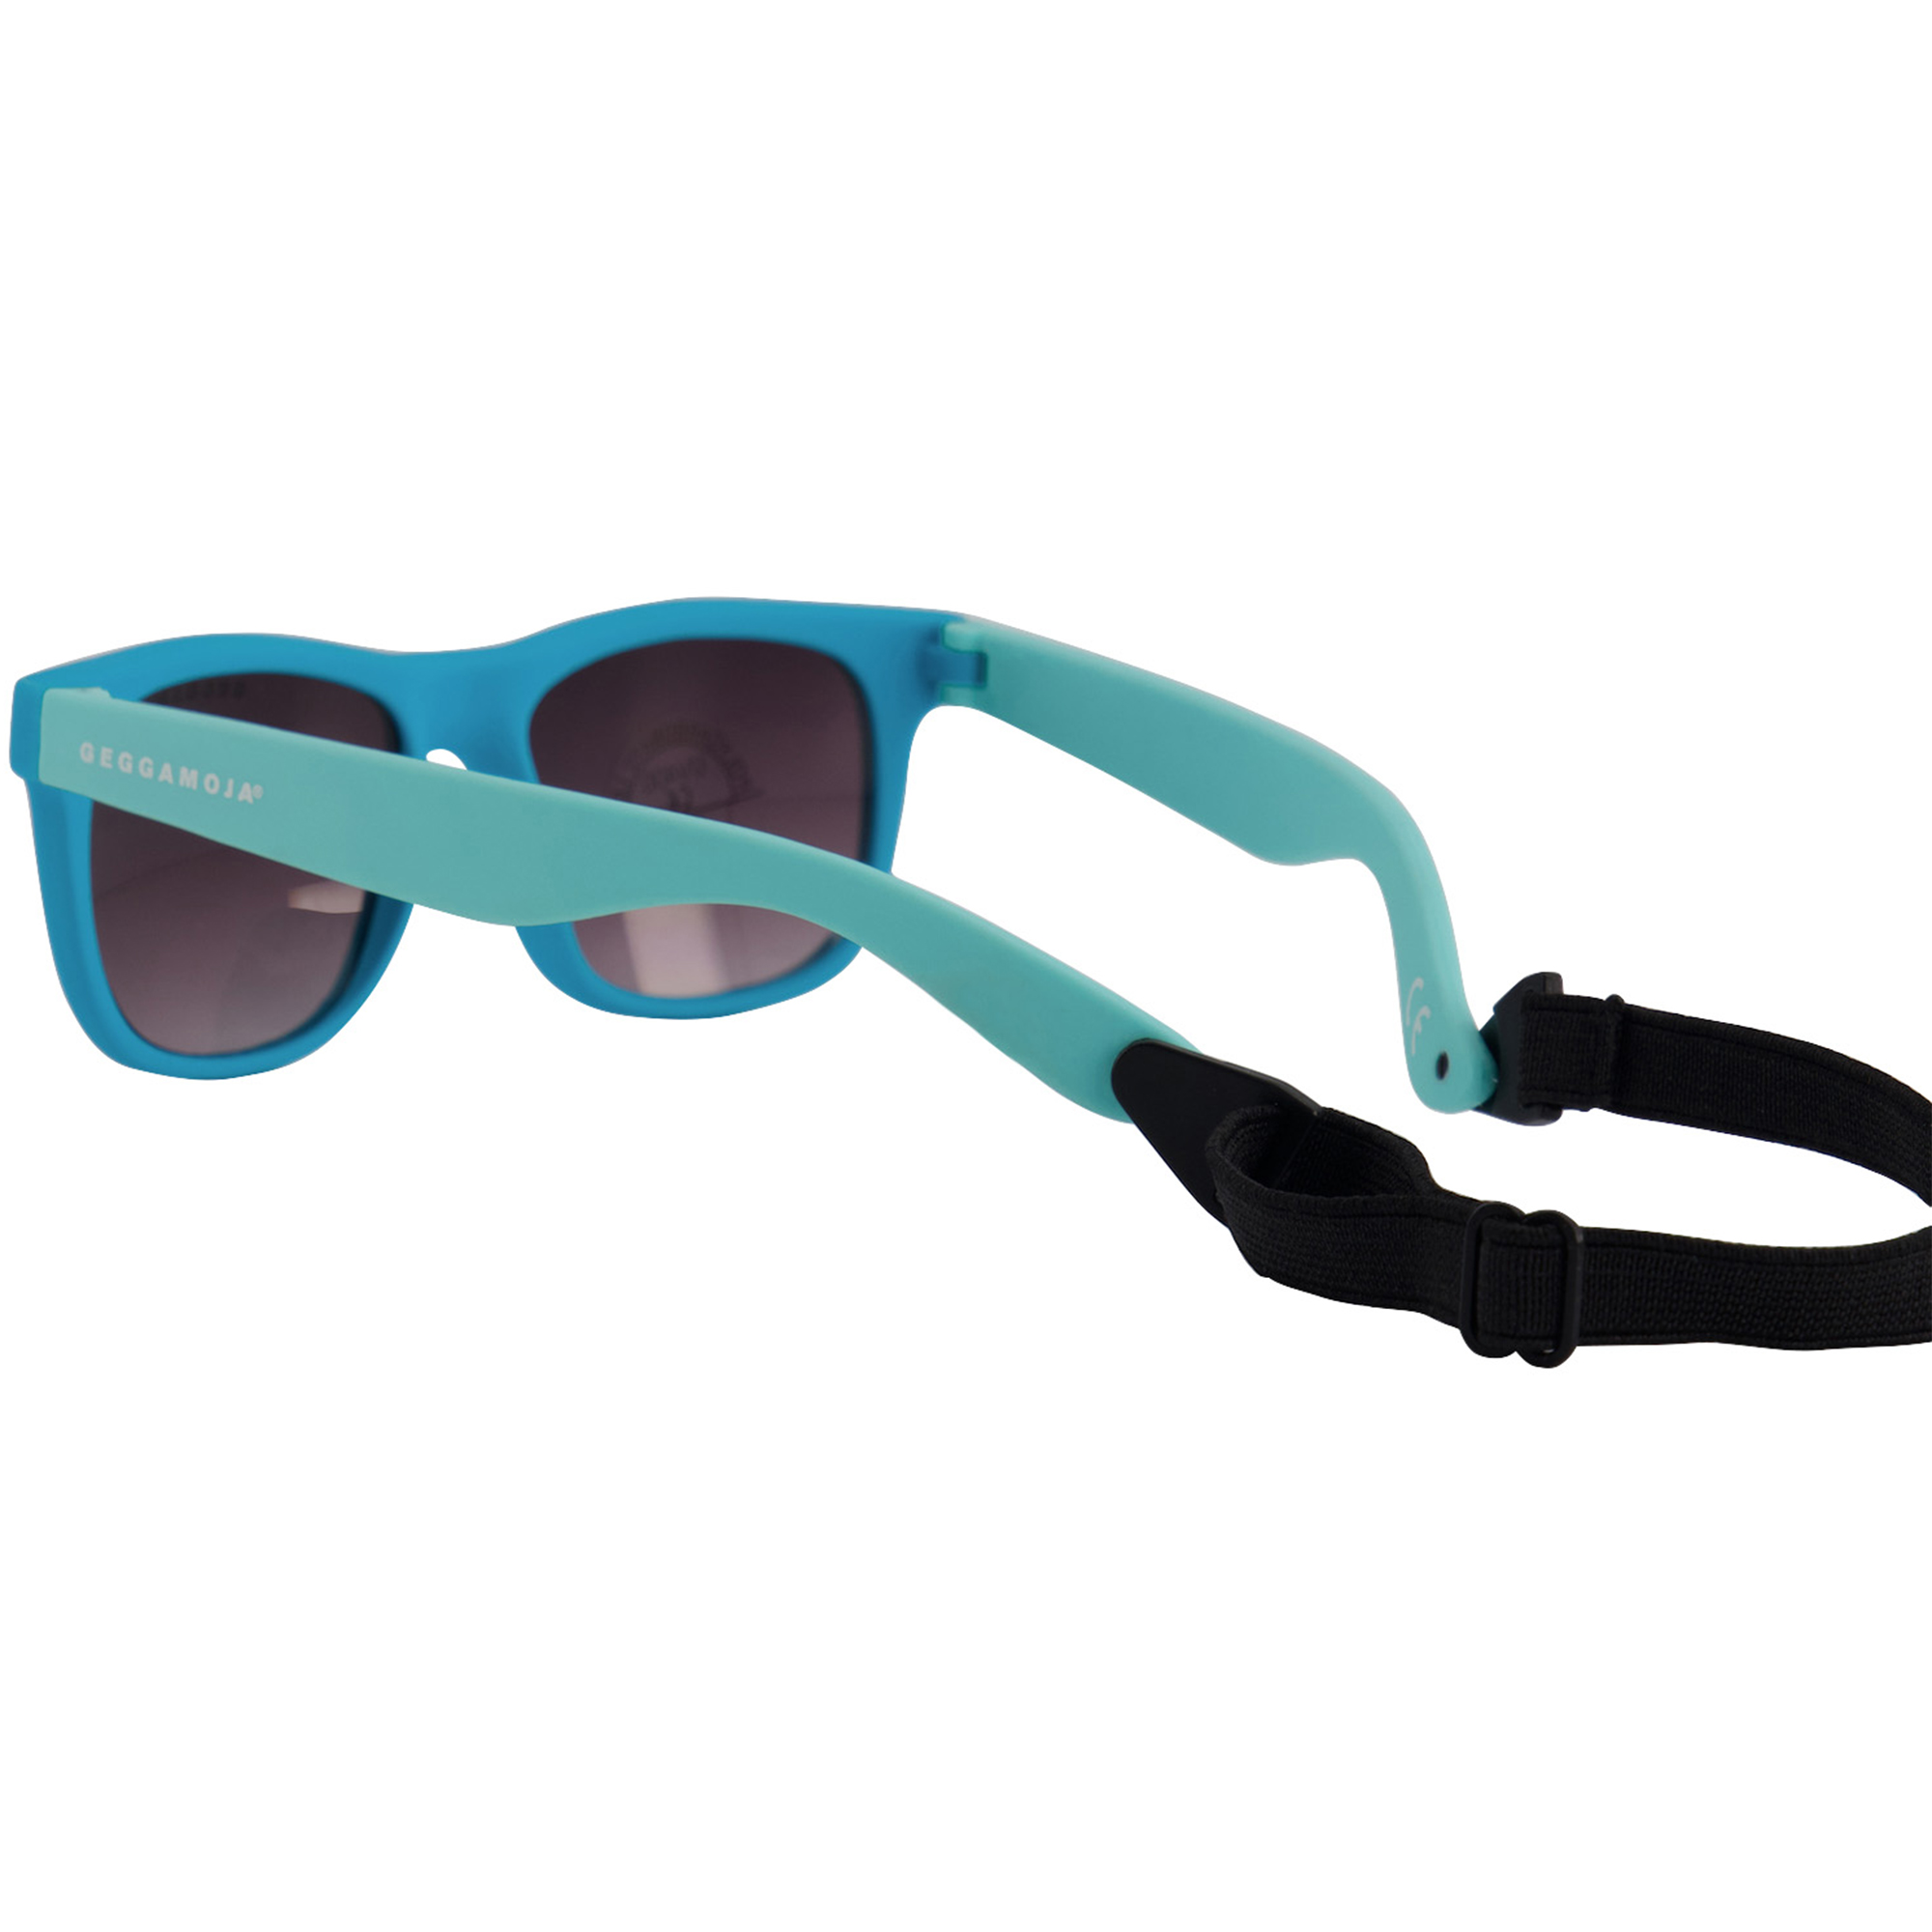 Cord for sunglasses